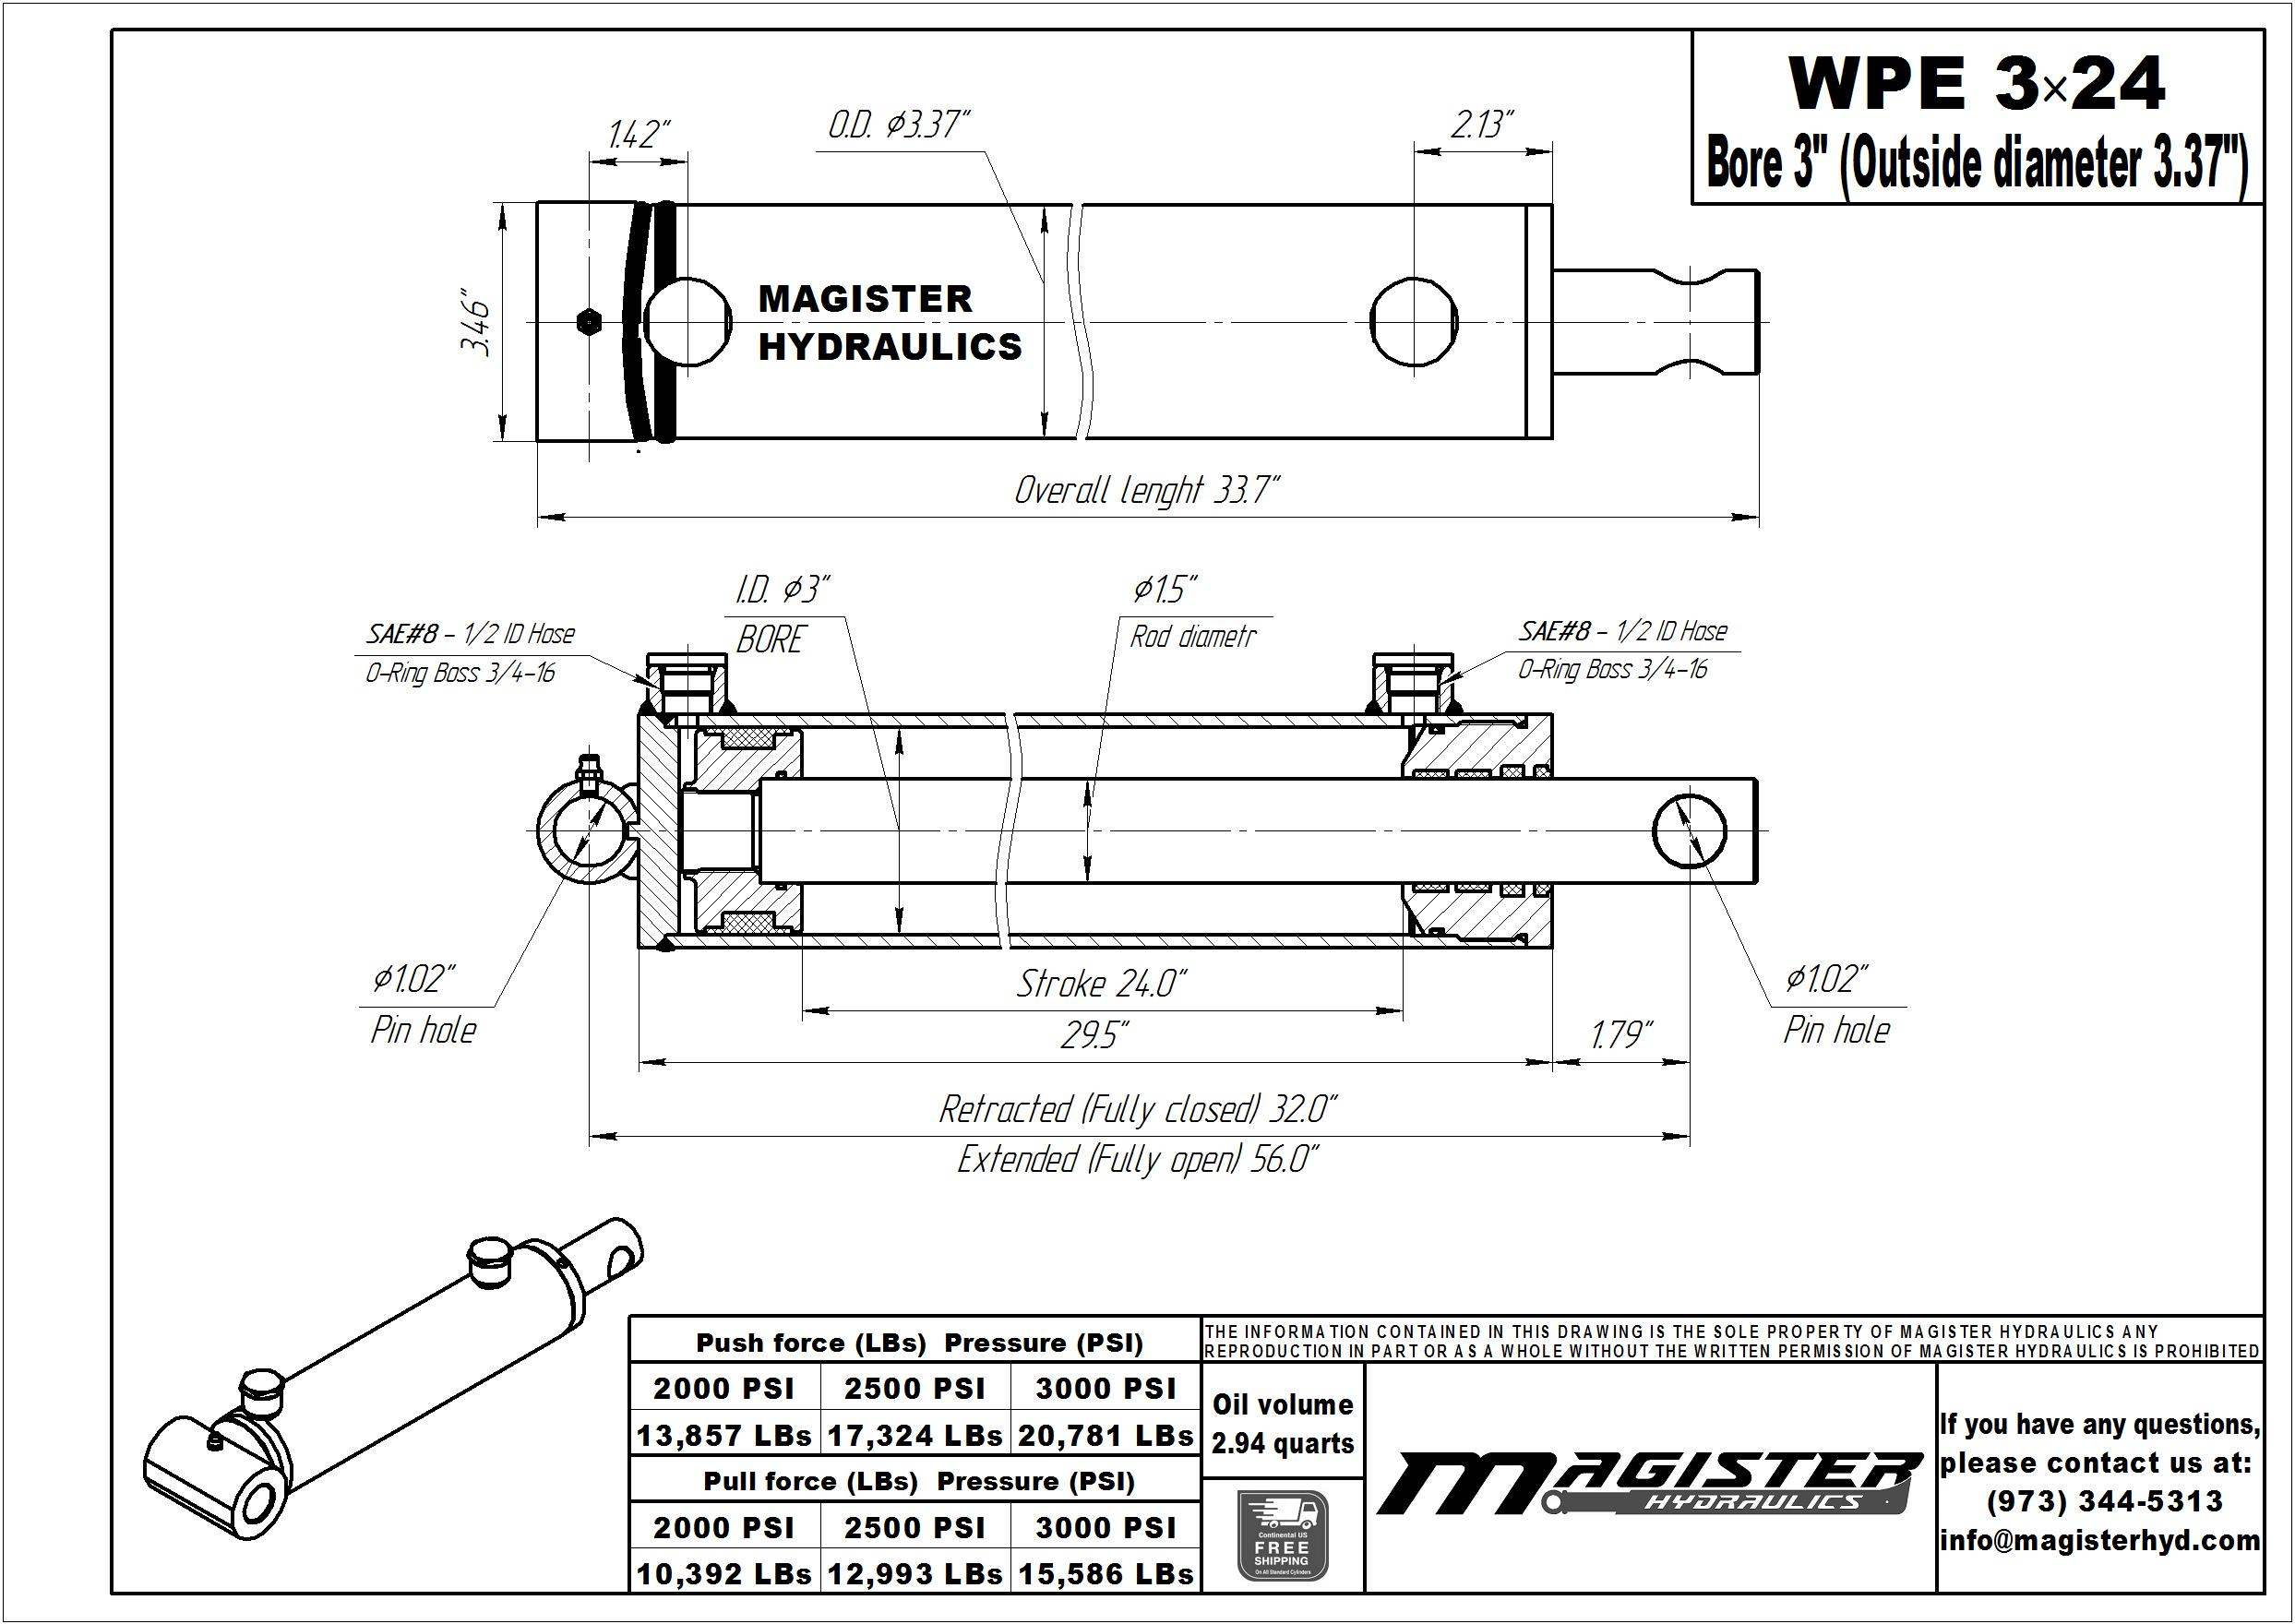 3 bore x 24 stroke hydraulic cylinder, welded pin eye double acting cylinder | Magister Hydraulics